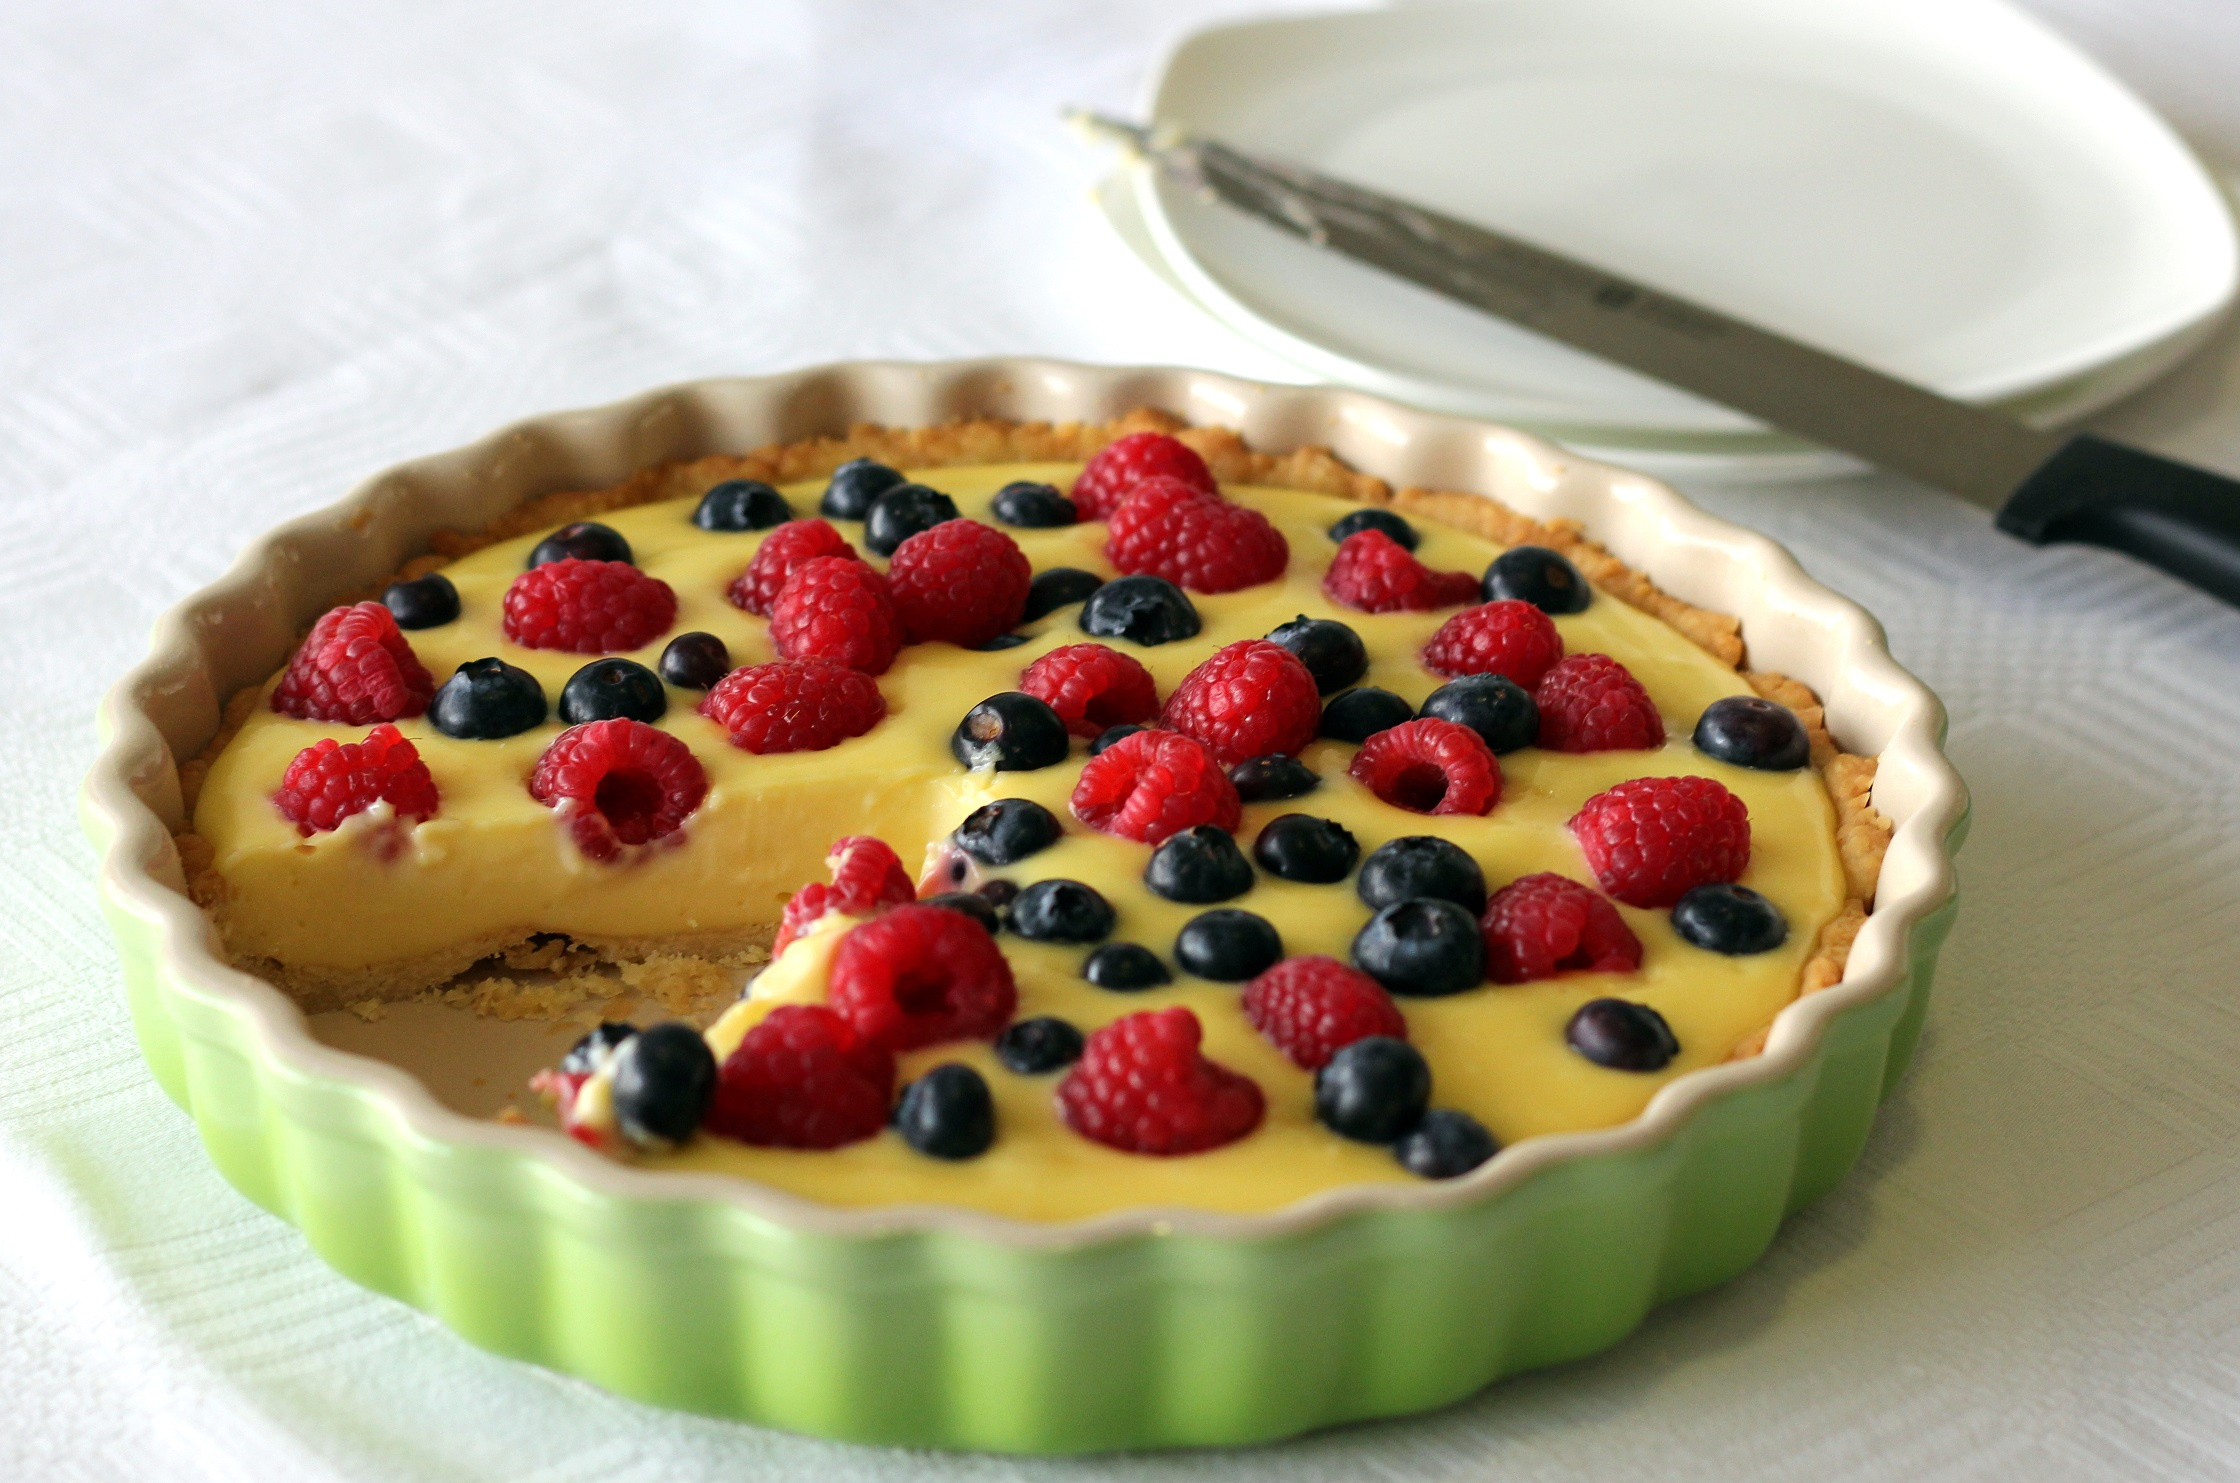 Gordon Ramsay's Lemon tart with summer berries